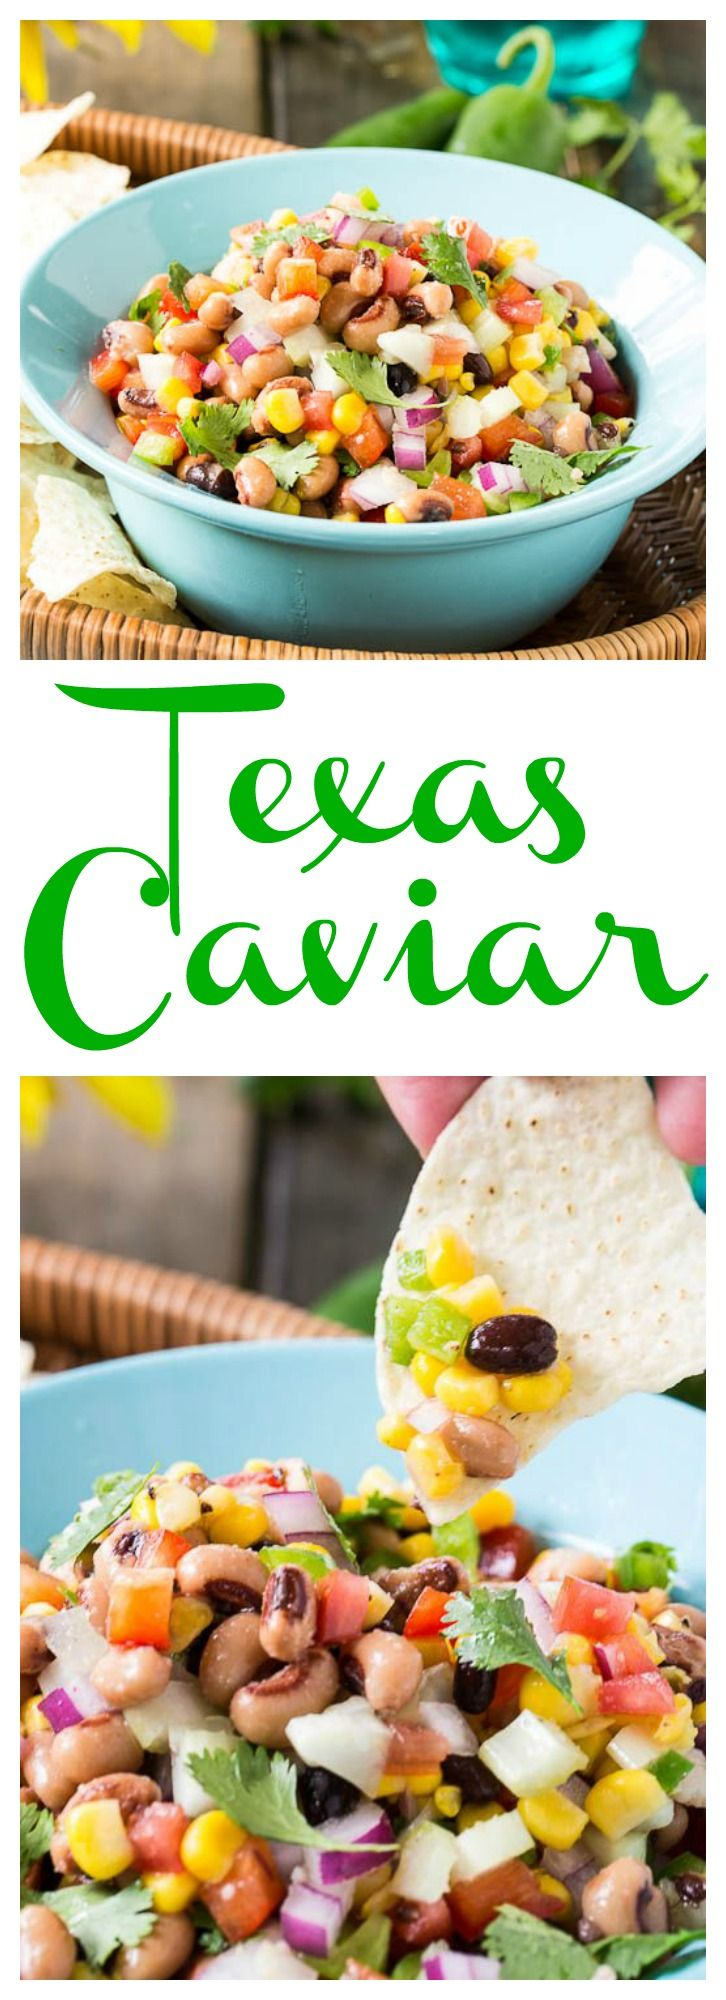 Texas Caviar Bean Dip-add diced canned green chili. SALAD-dip, spinach, cheese, dices jalapenos, cilantro, avocado, ranch, crushed chips